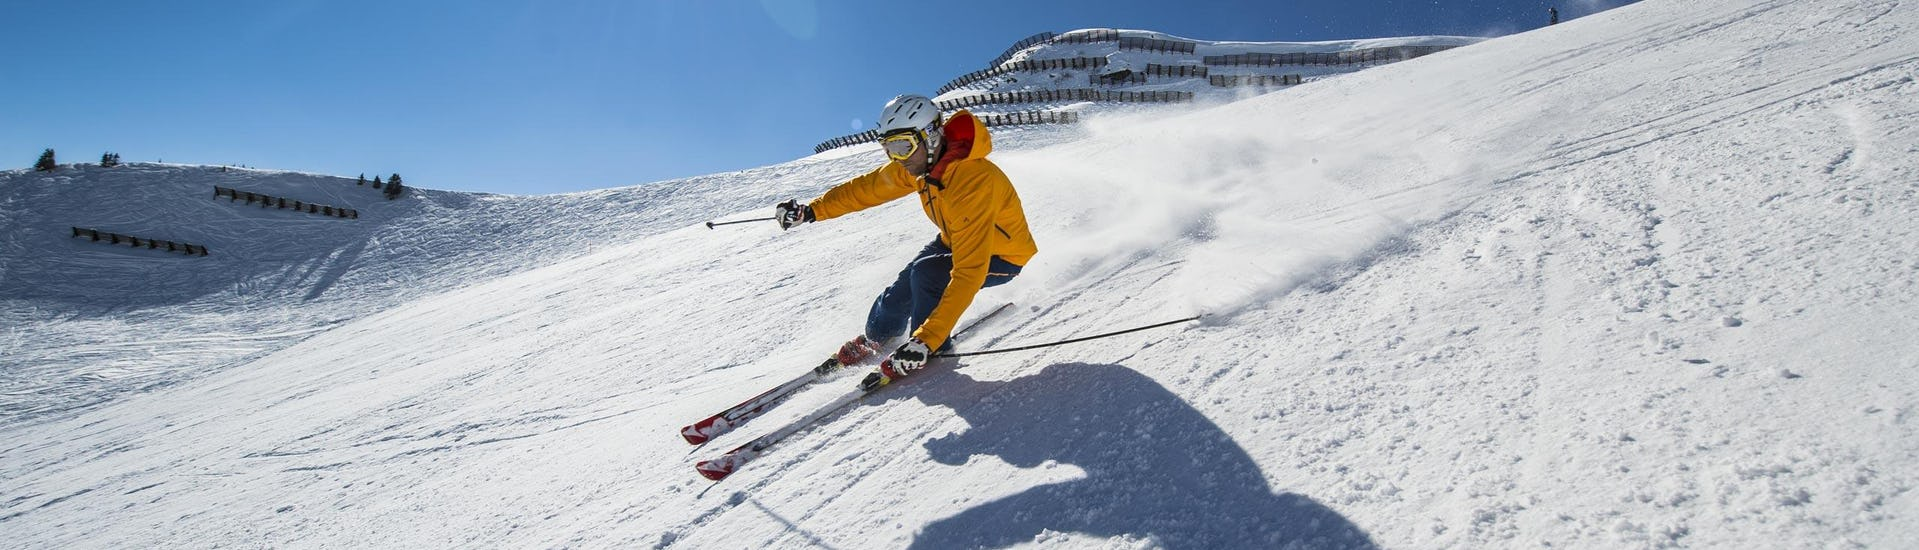 Learn Carving with Private Ski instructor: A skier is skiing down a sunny ski slope while participating in an activity offered by Active Snow Team.